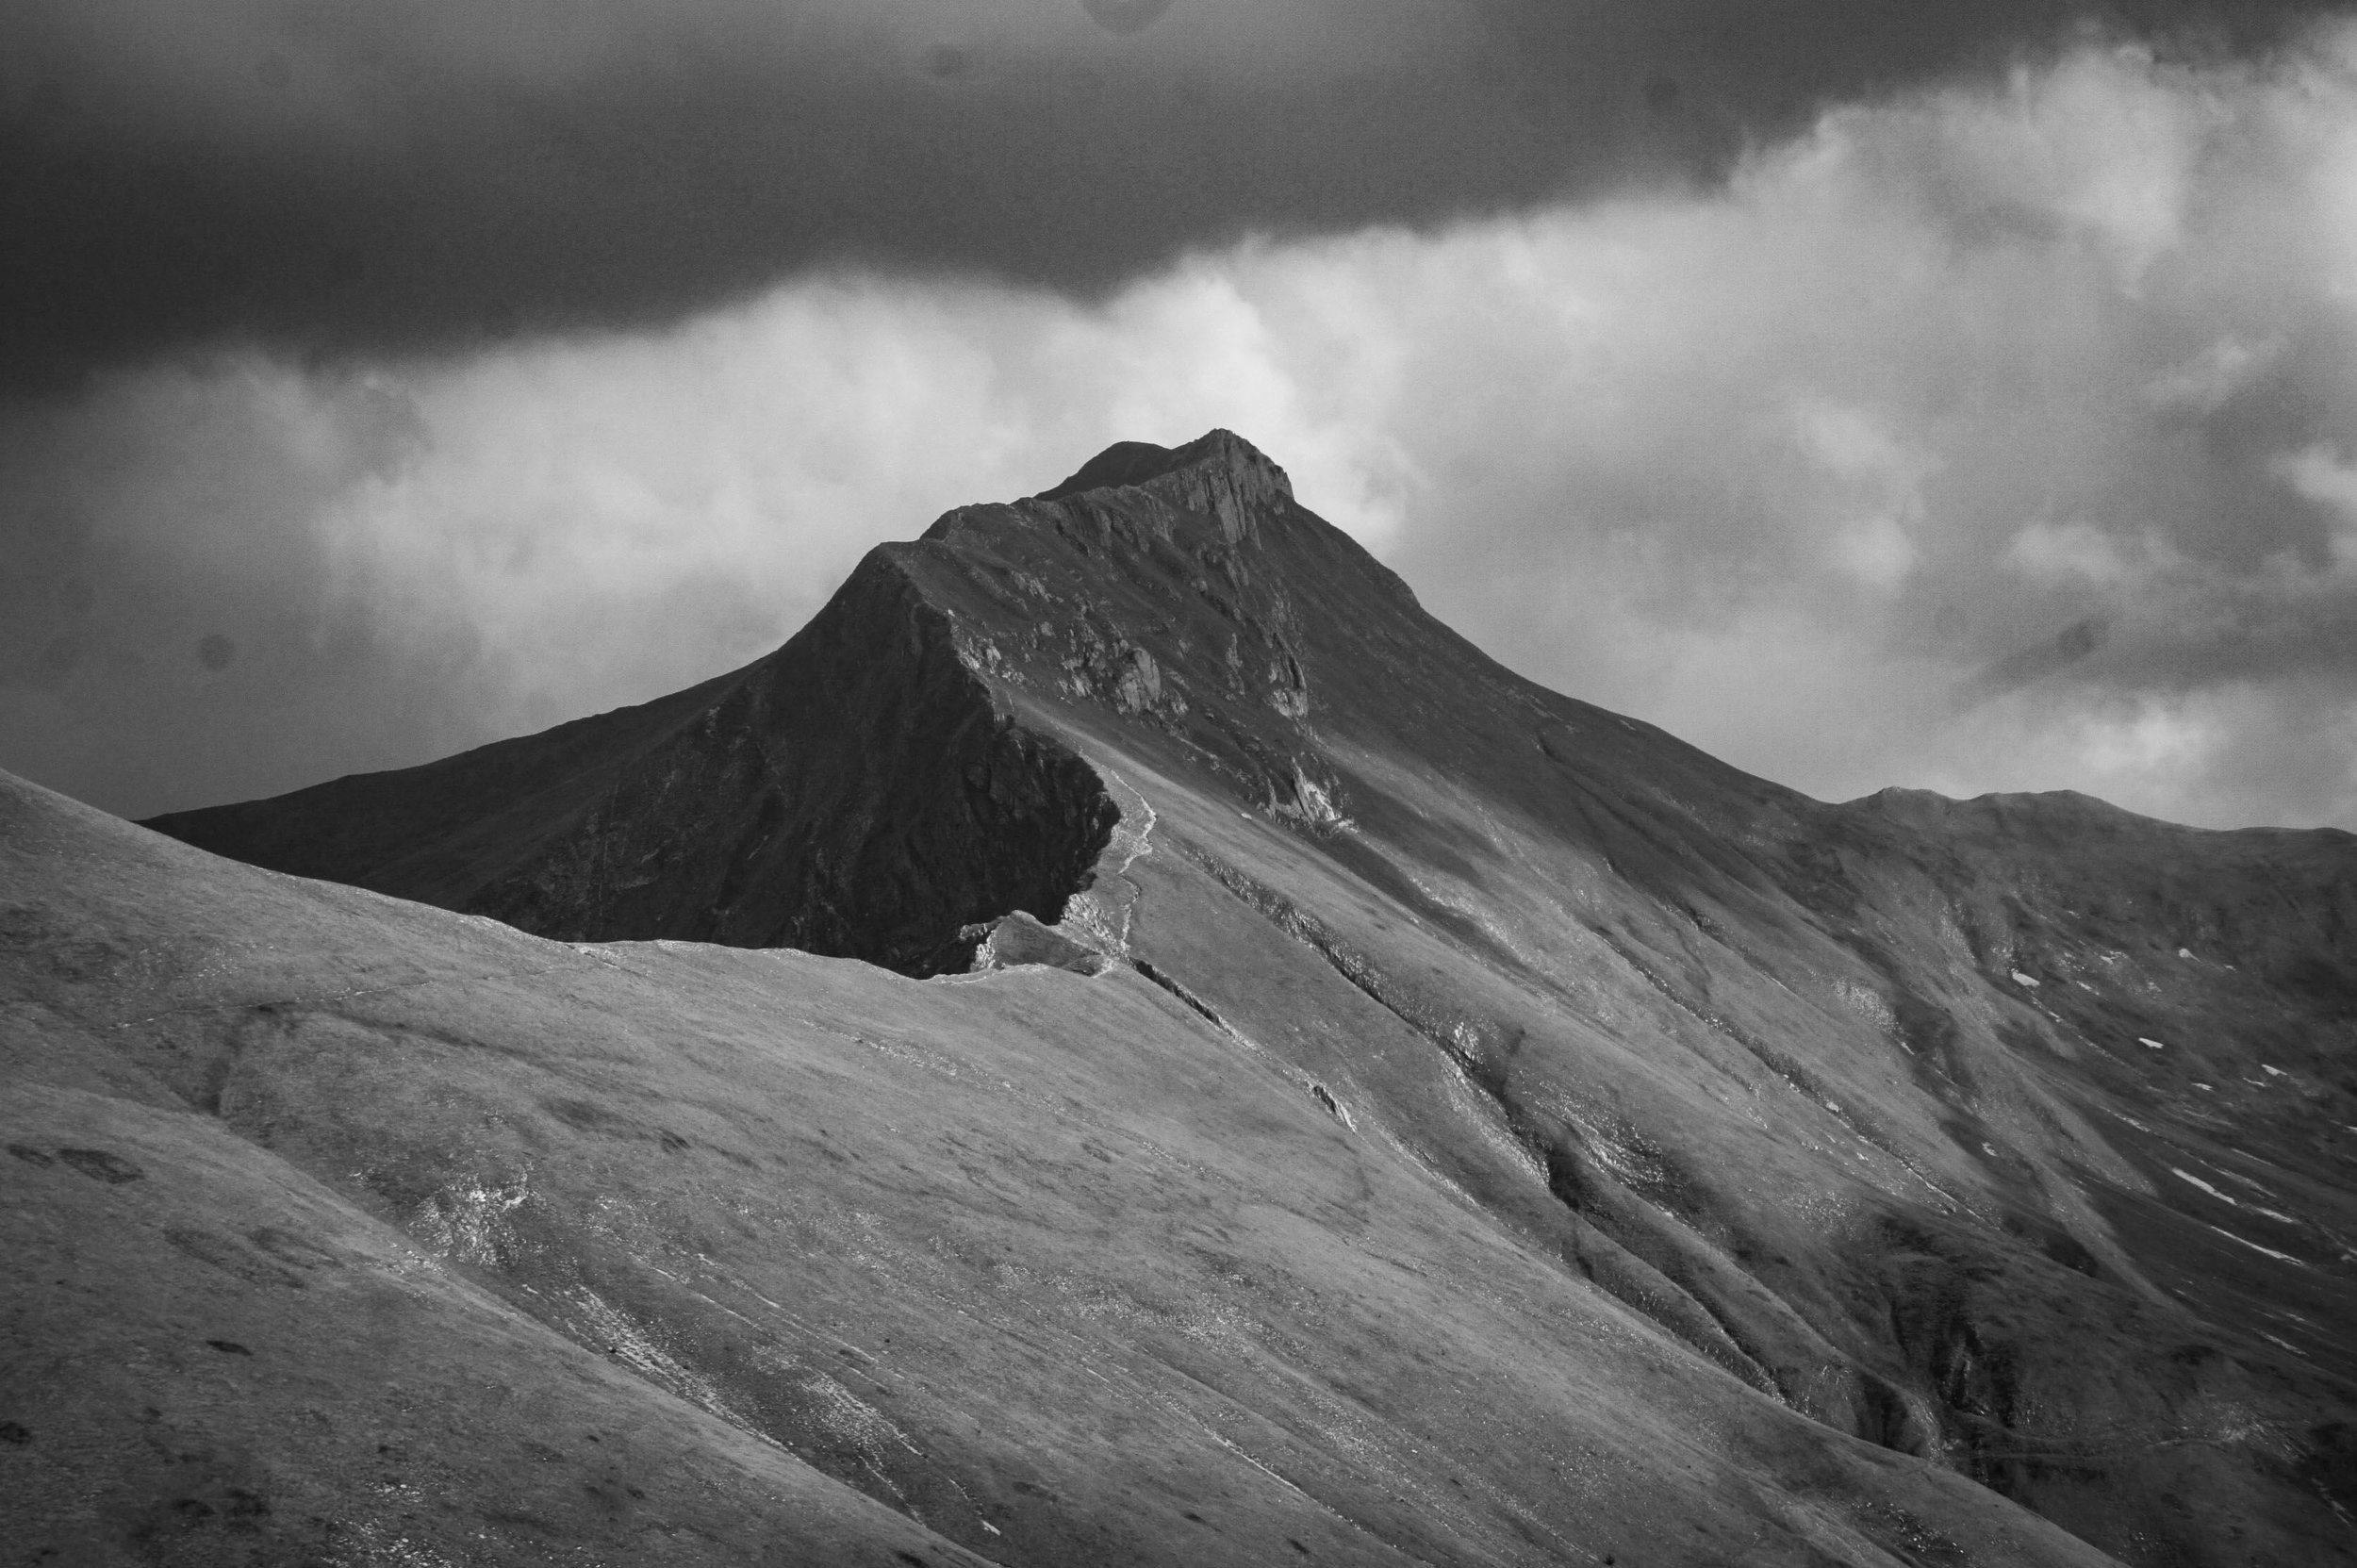 BW_Snowdon route landscape pexels-photo-569391.jpg